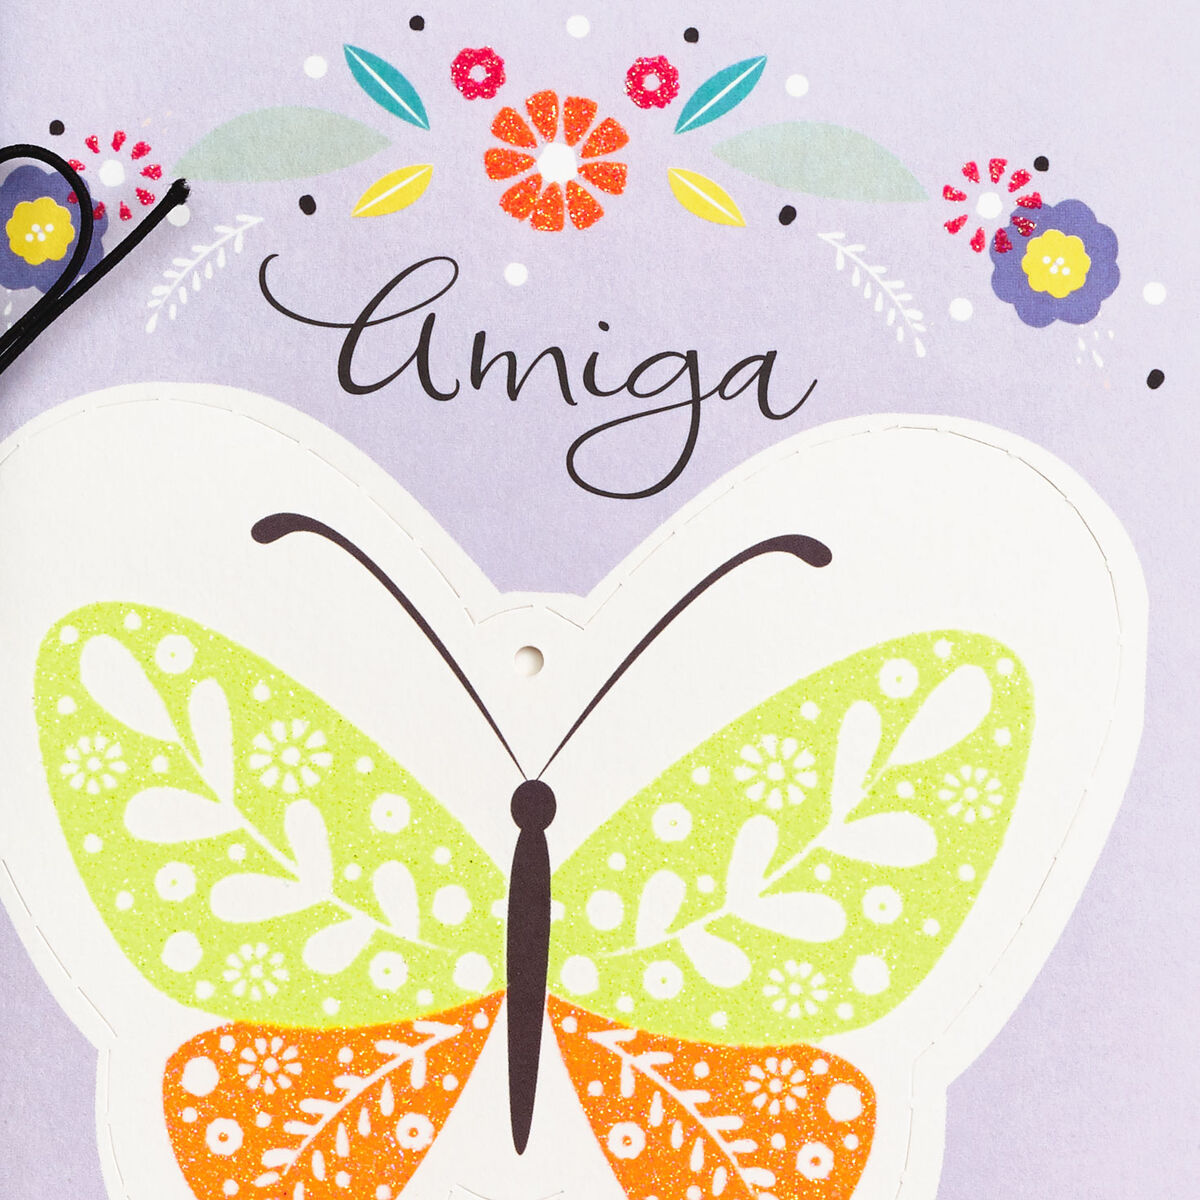 beautiful butterfly spanishlanguage mother's day card for